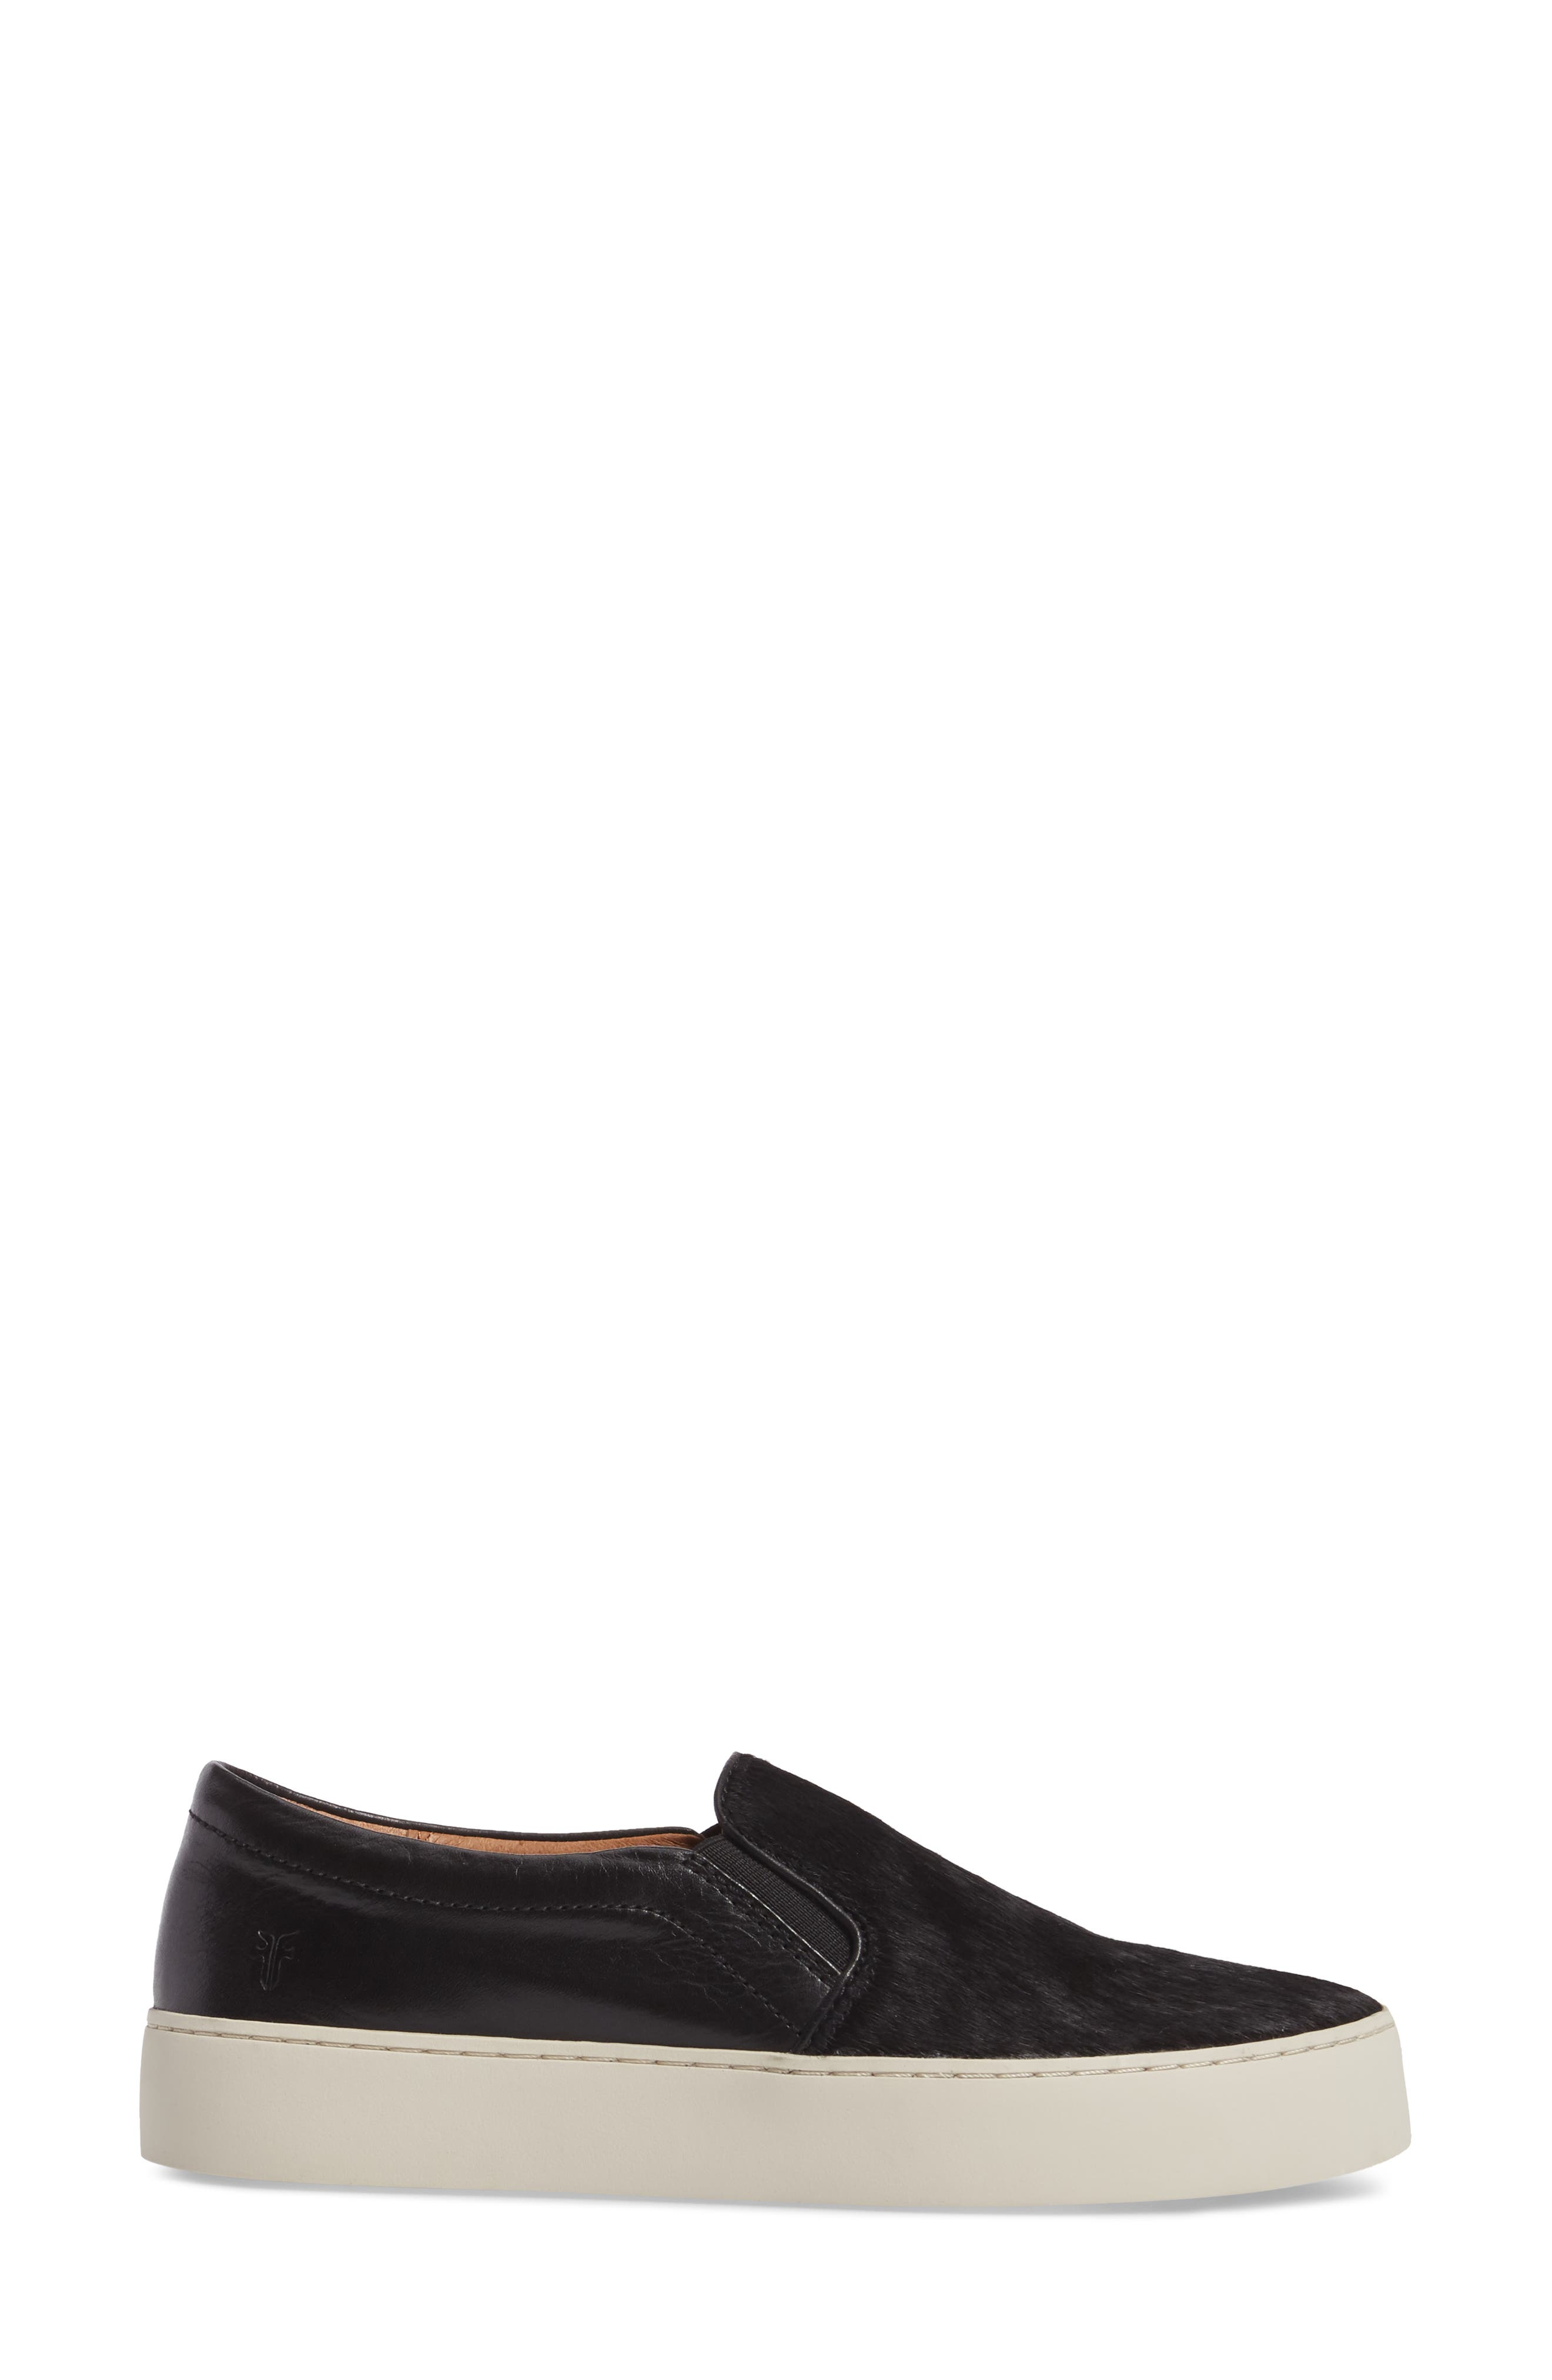 Lena Slip-On Sneaker,                             Alternate thumbnail 3, color,                             BLACK